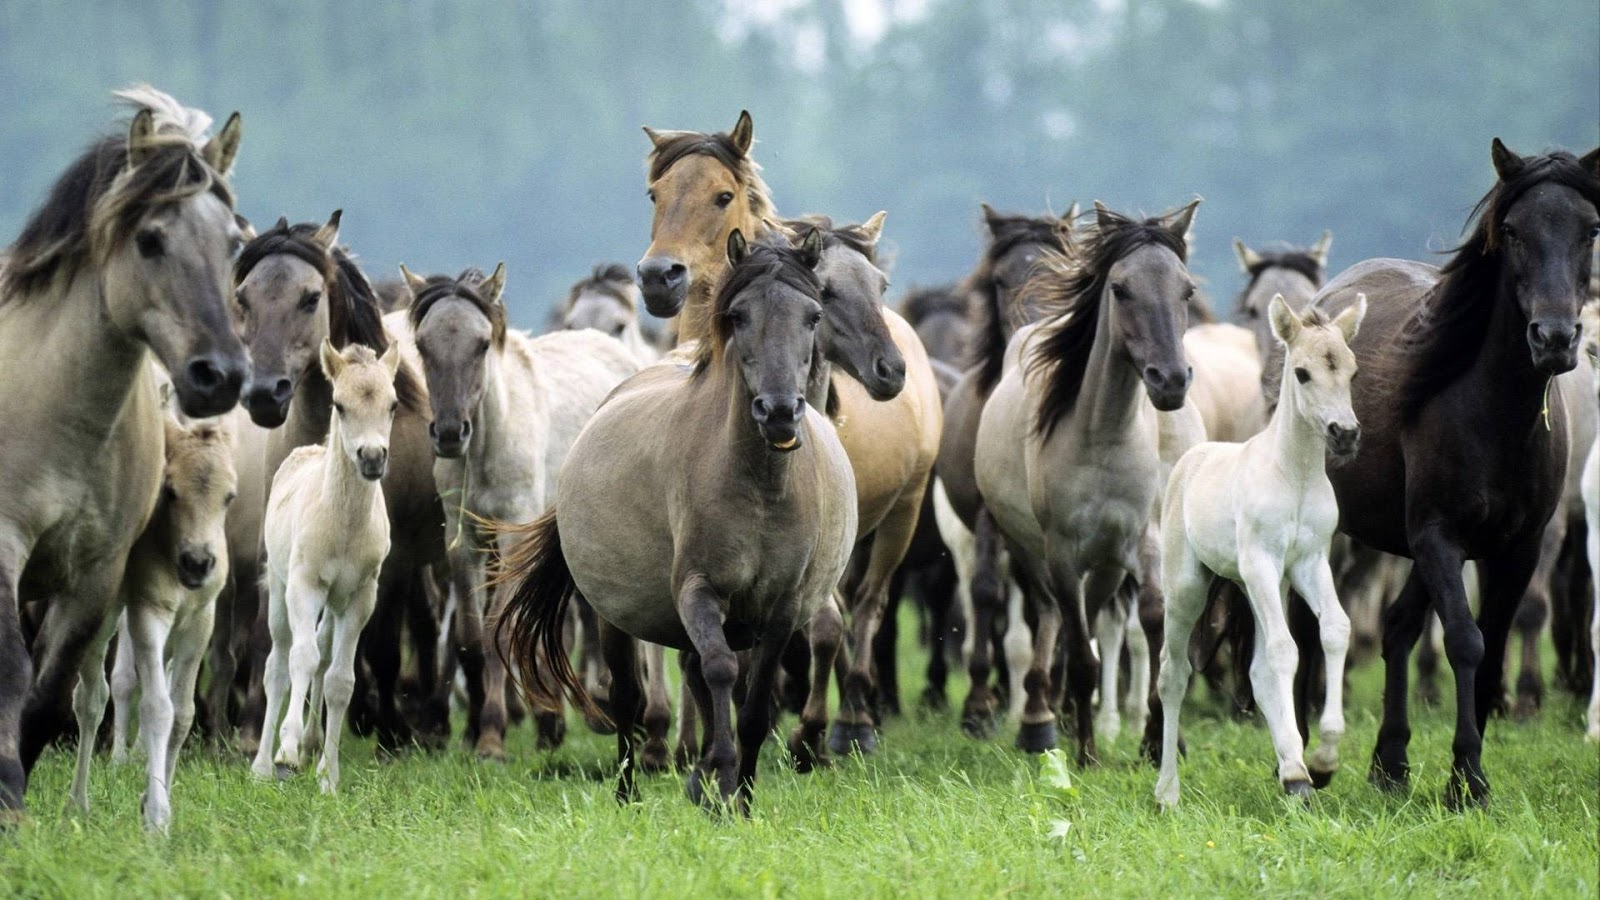 Horse Wallpapers HD  Collection of Running Horses App